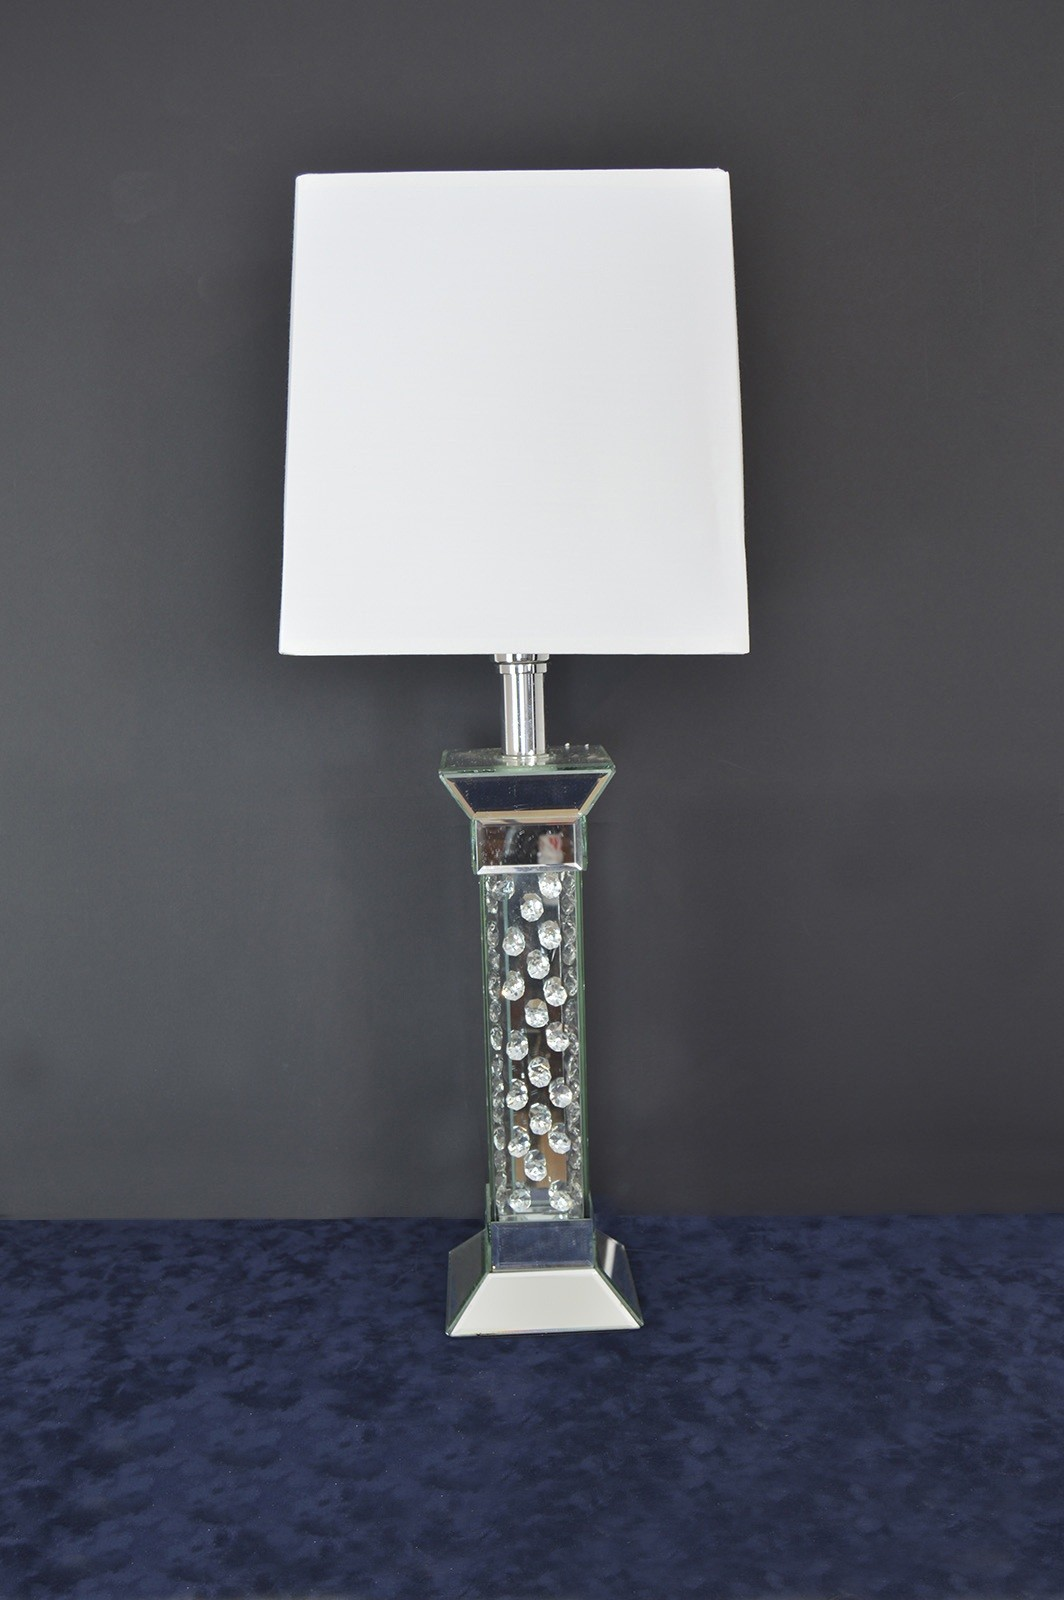 mirror-table-lamp-photo-10